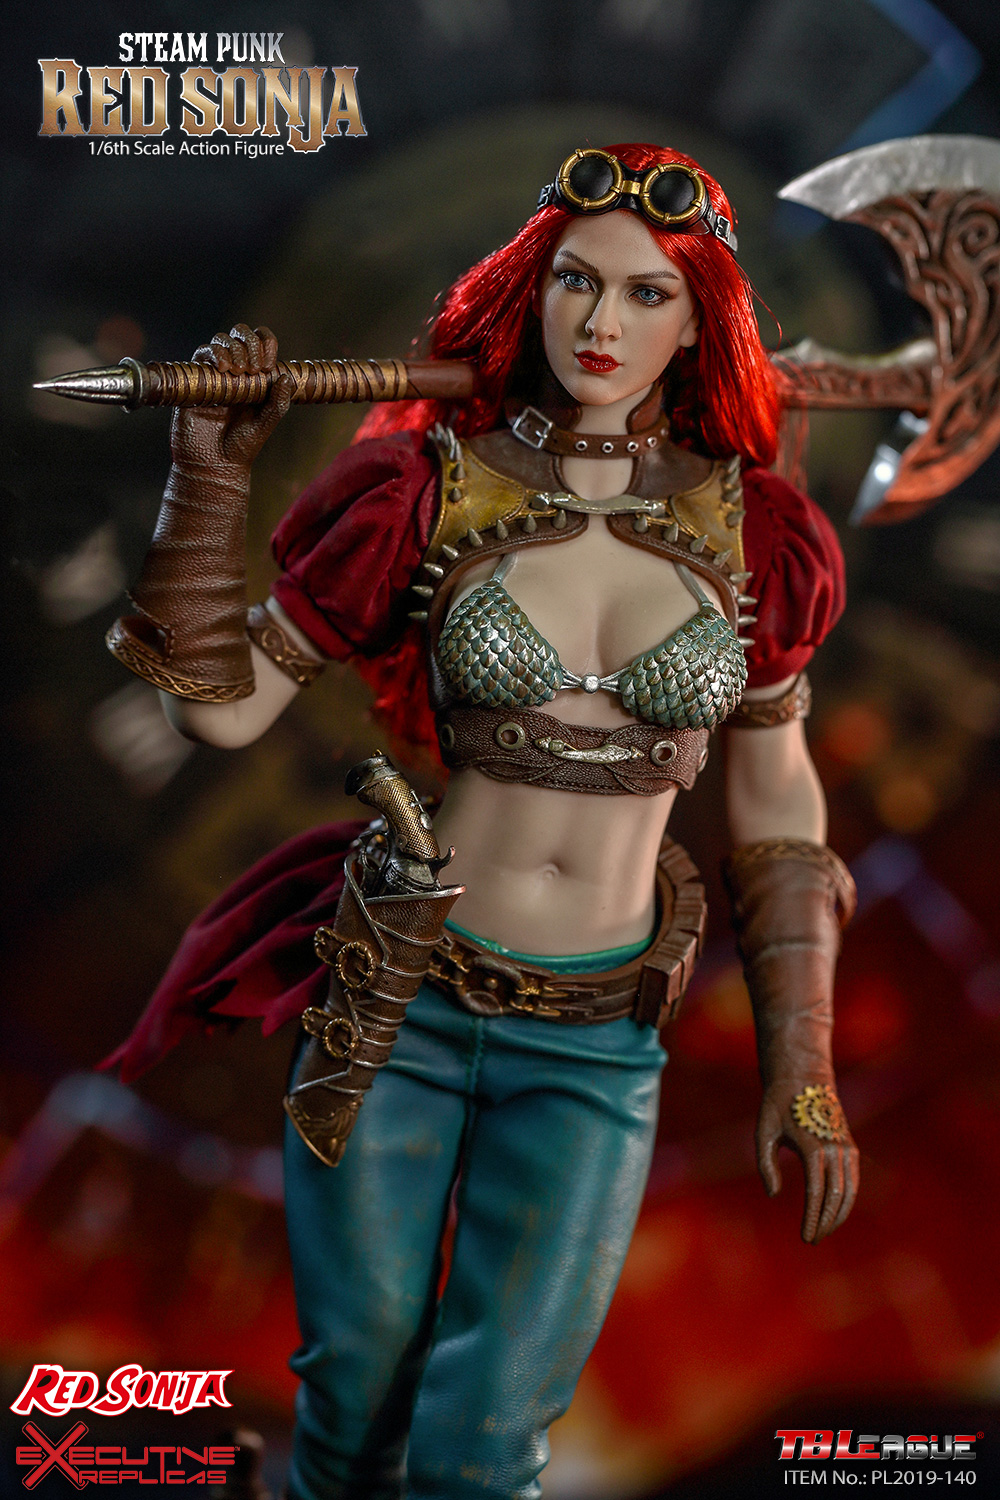 steampunk - NEW PRODUCT: TBLeague: 1/6 Steam Punk - Red Sonja / Queen Excalibur [punk version] PL2019-140-A/B 20192610